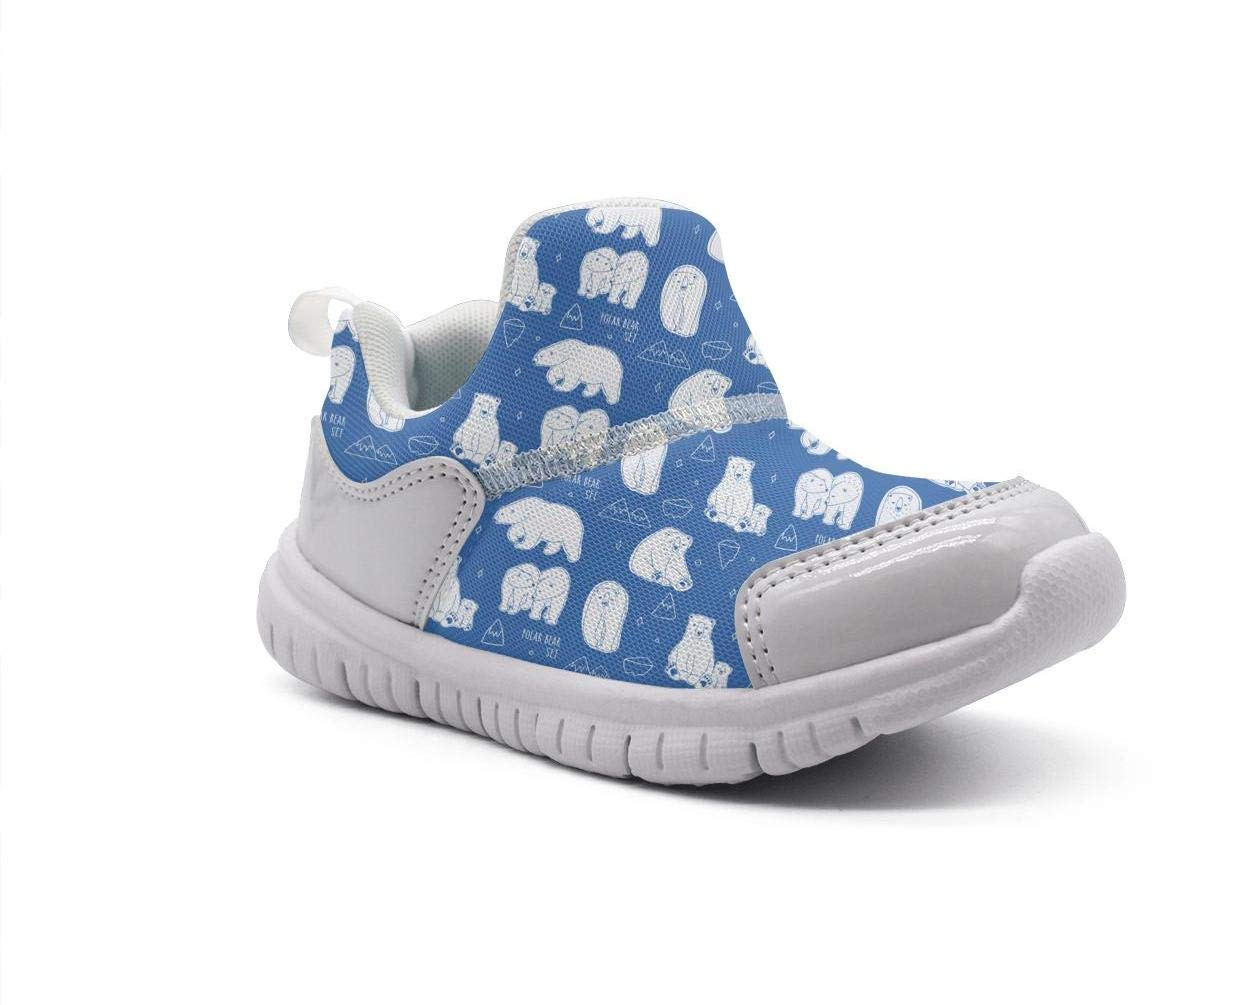 ONEYUAN Children Polar Bear Live Blue Kid Casual Lightweight Sport Shoes Sneakers Walking Athletic Shoes